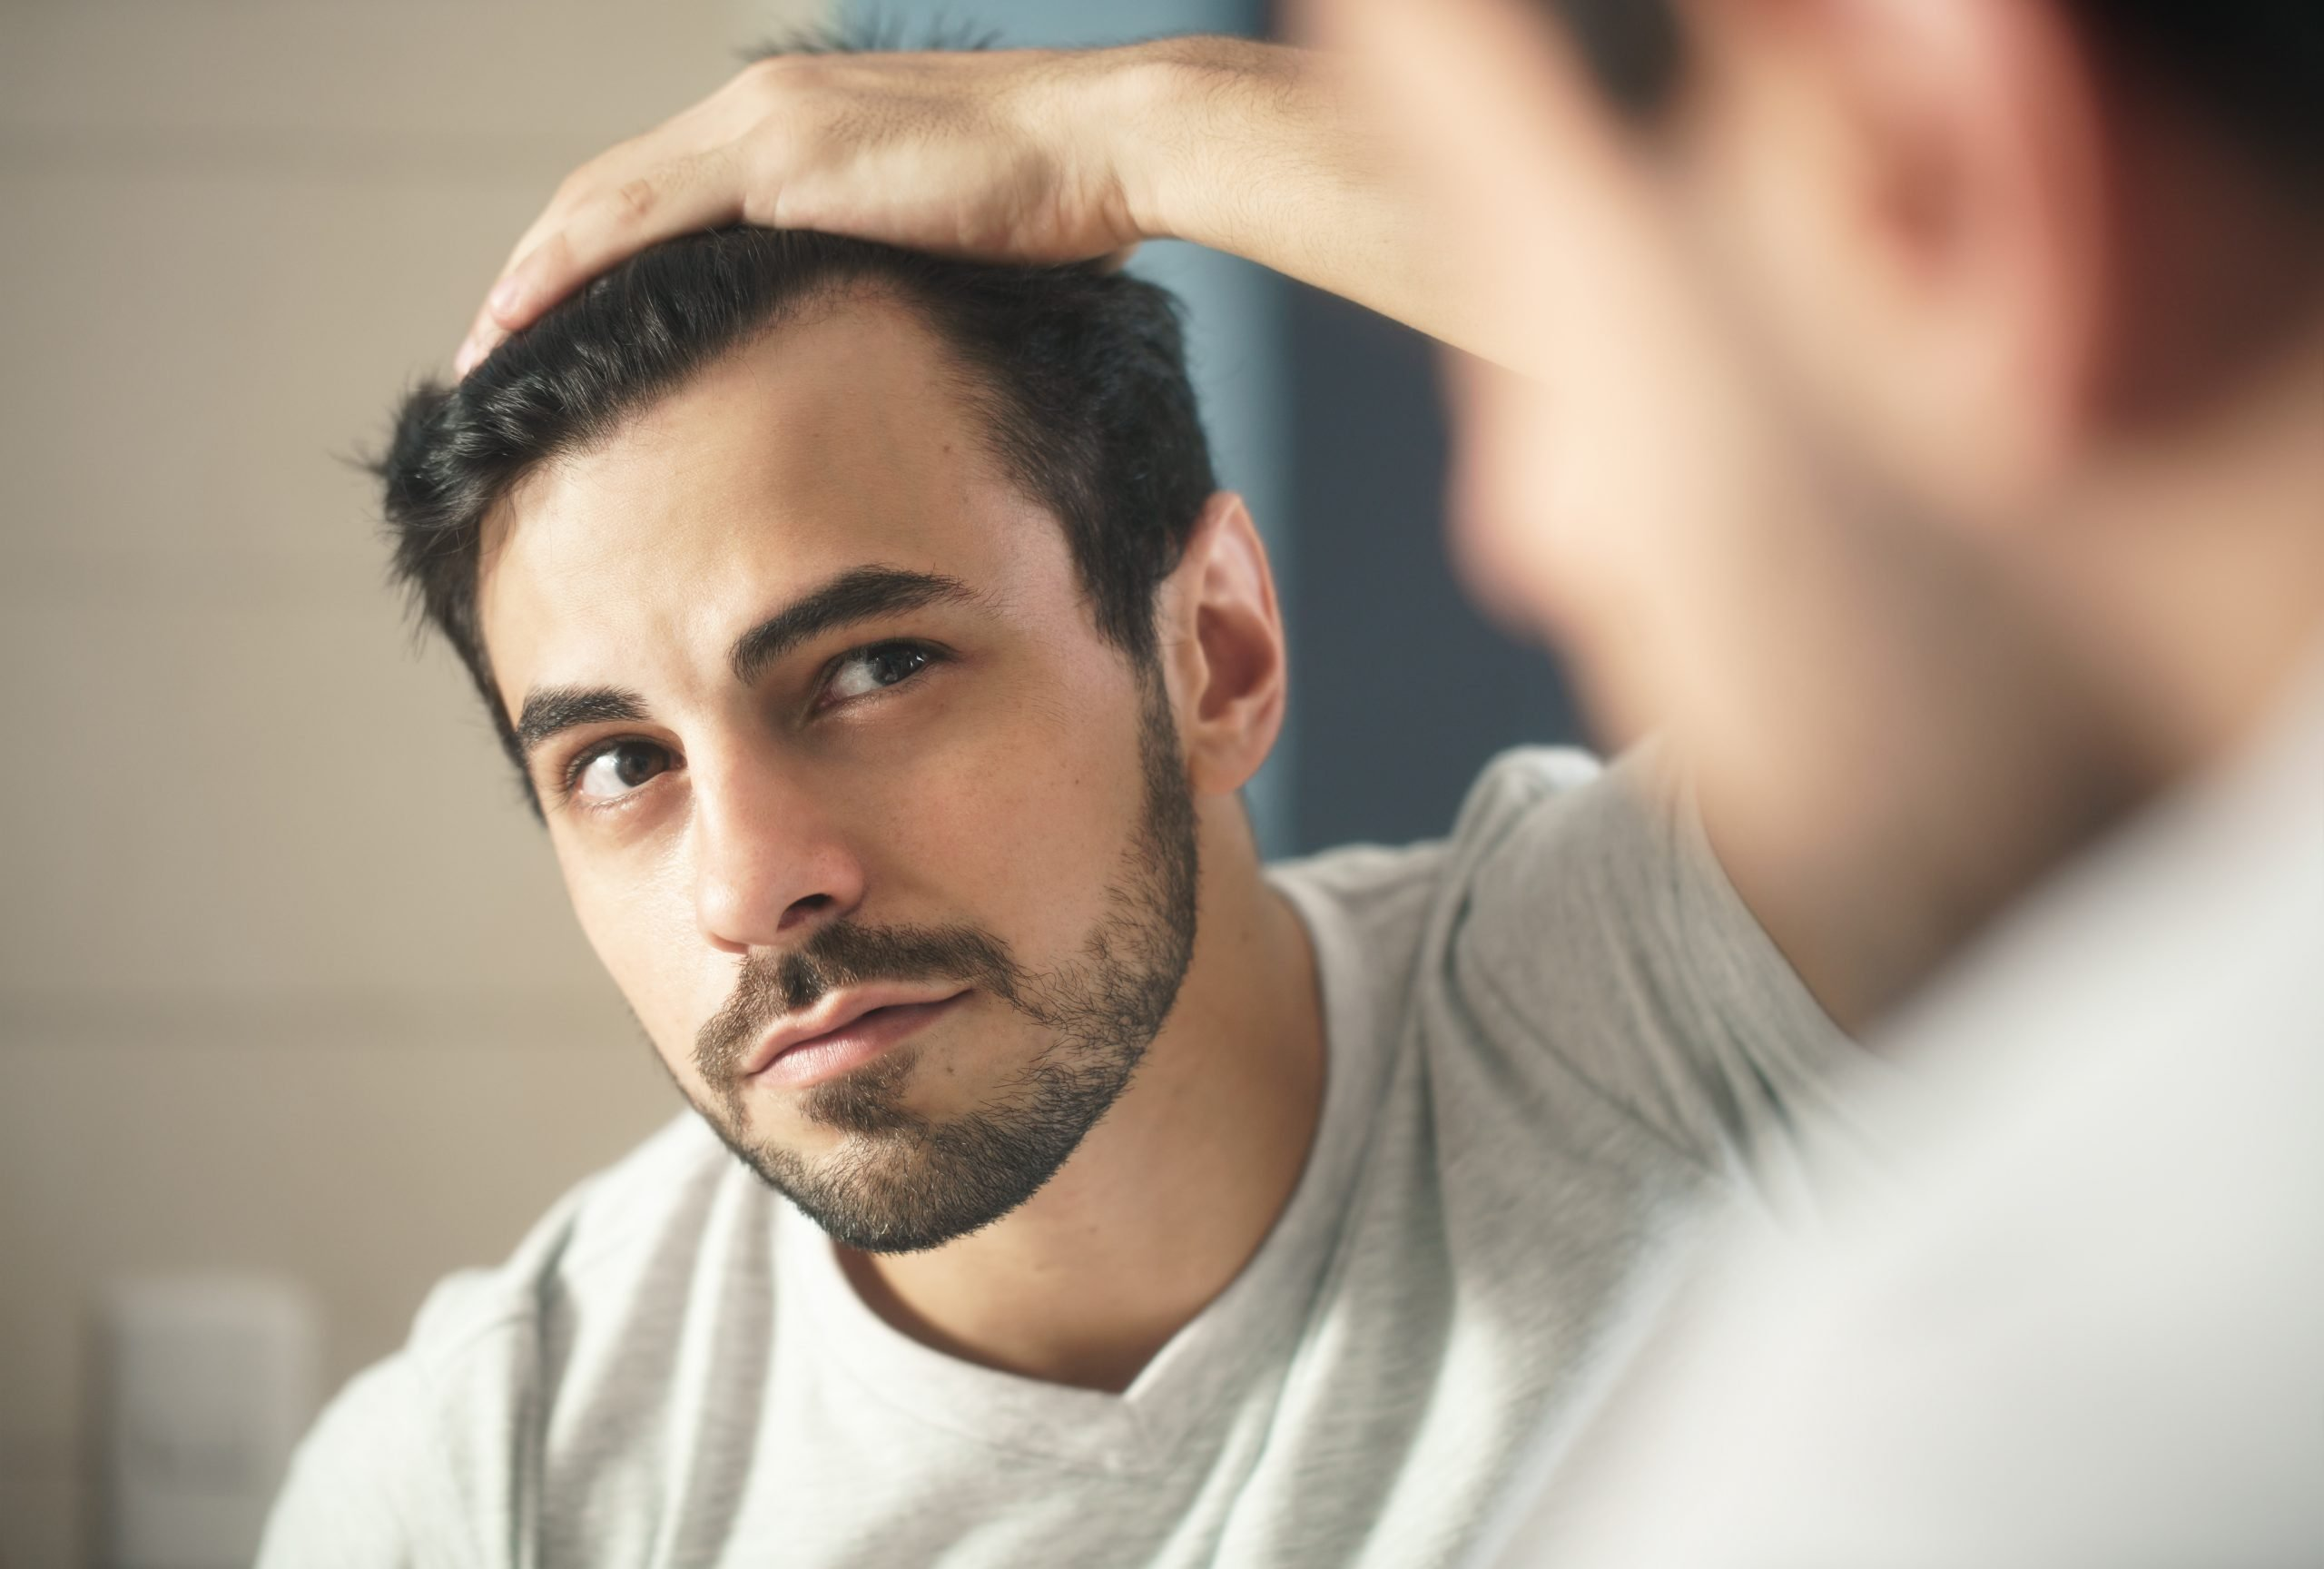 How To Deal With A Receding Hairline 2021 - Hair Loss Geeks